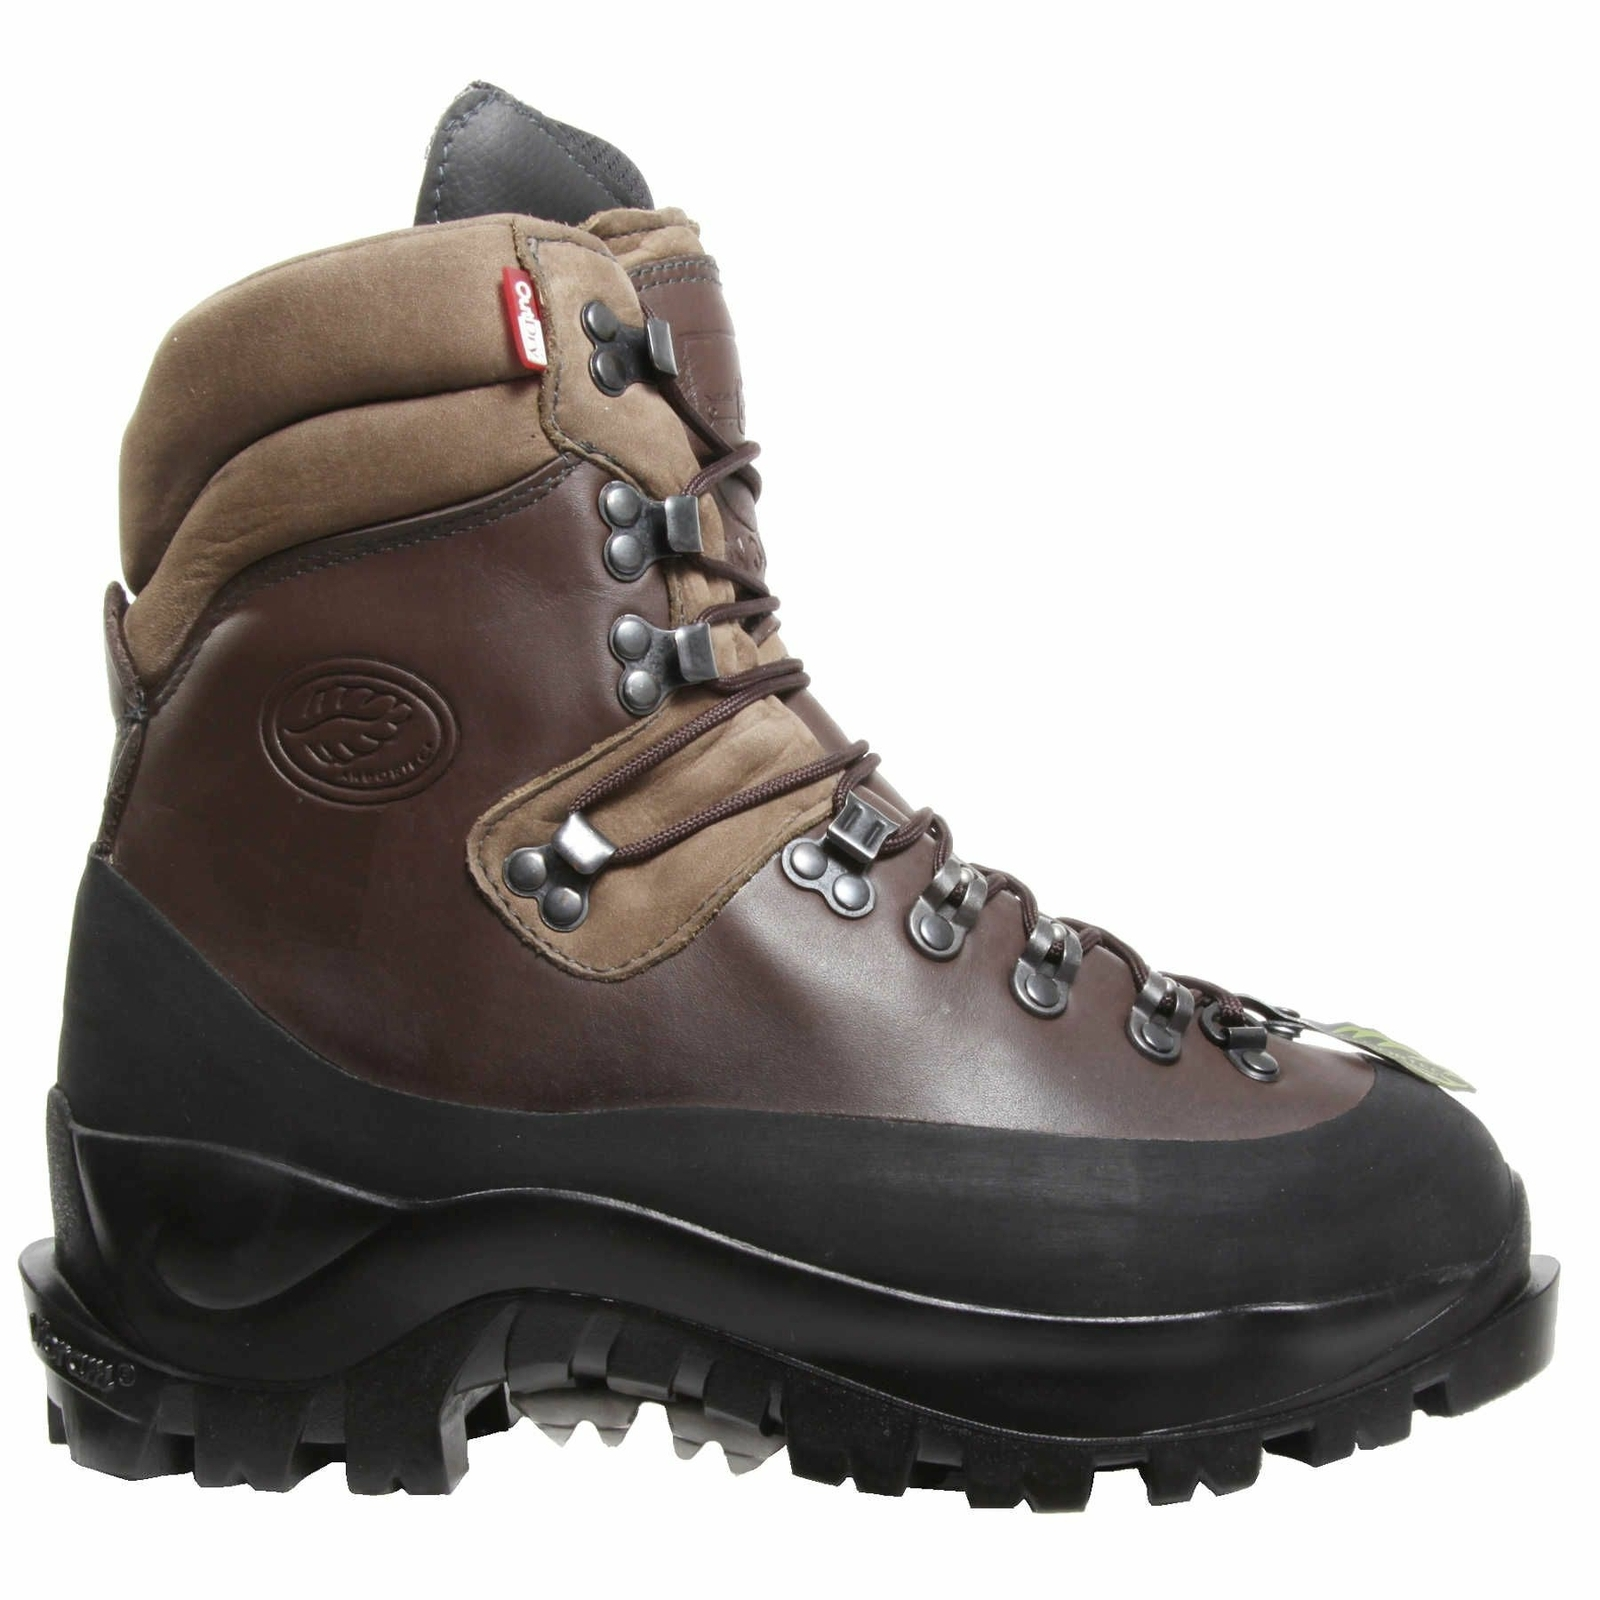 ARBORTEC Scafell Class 2 Chainsaw Boots